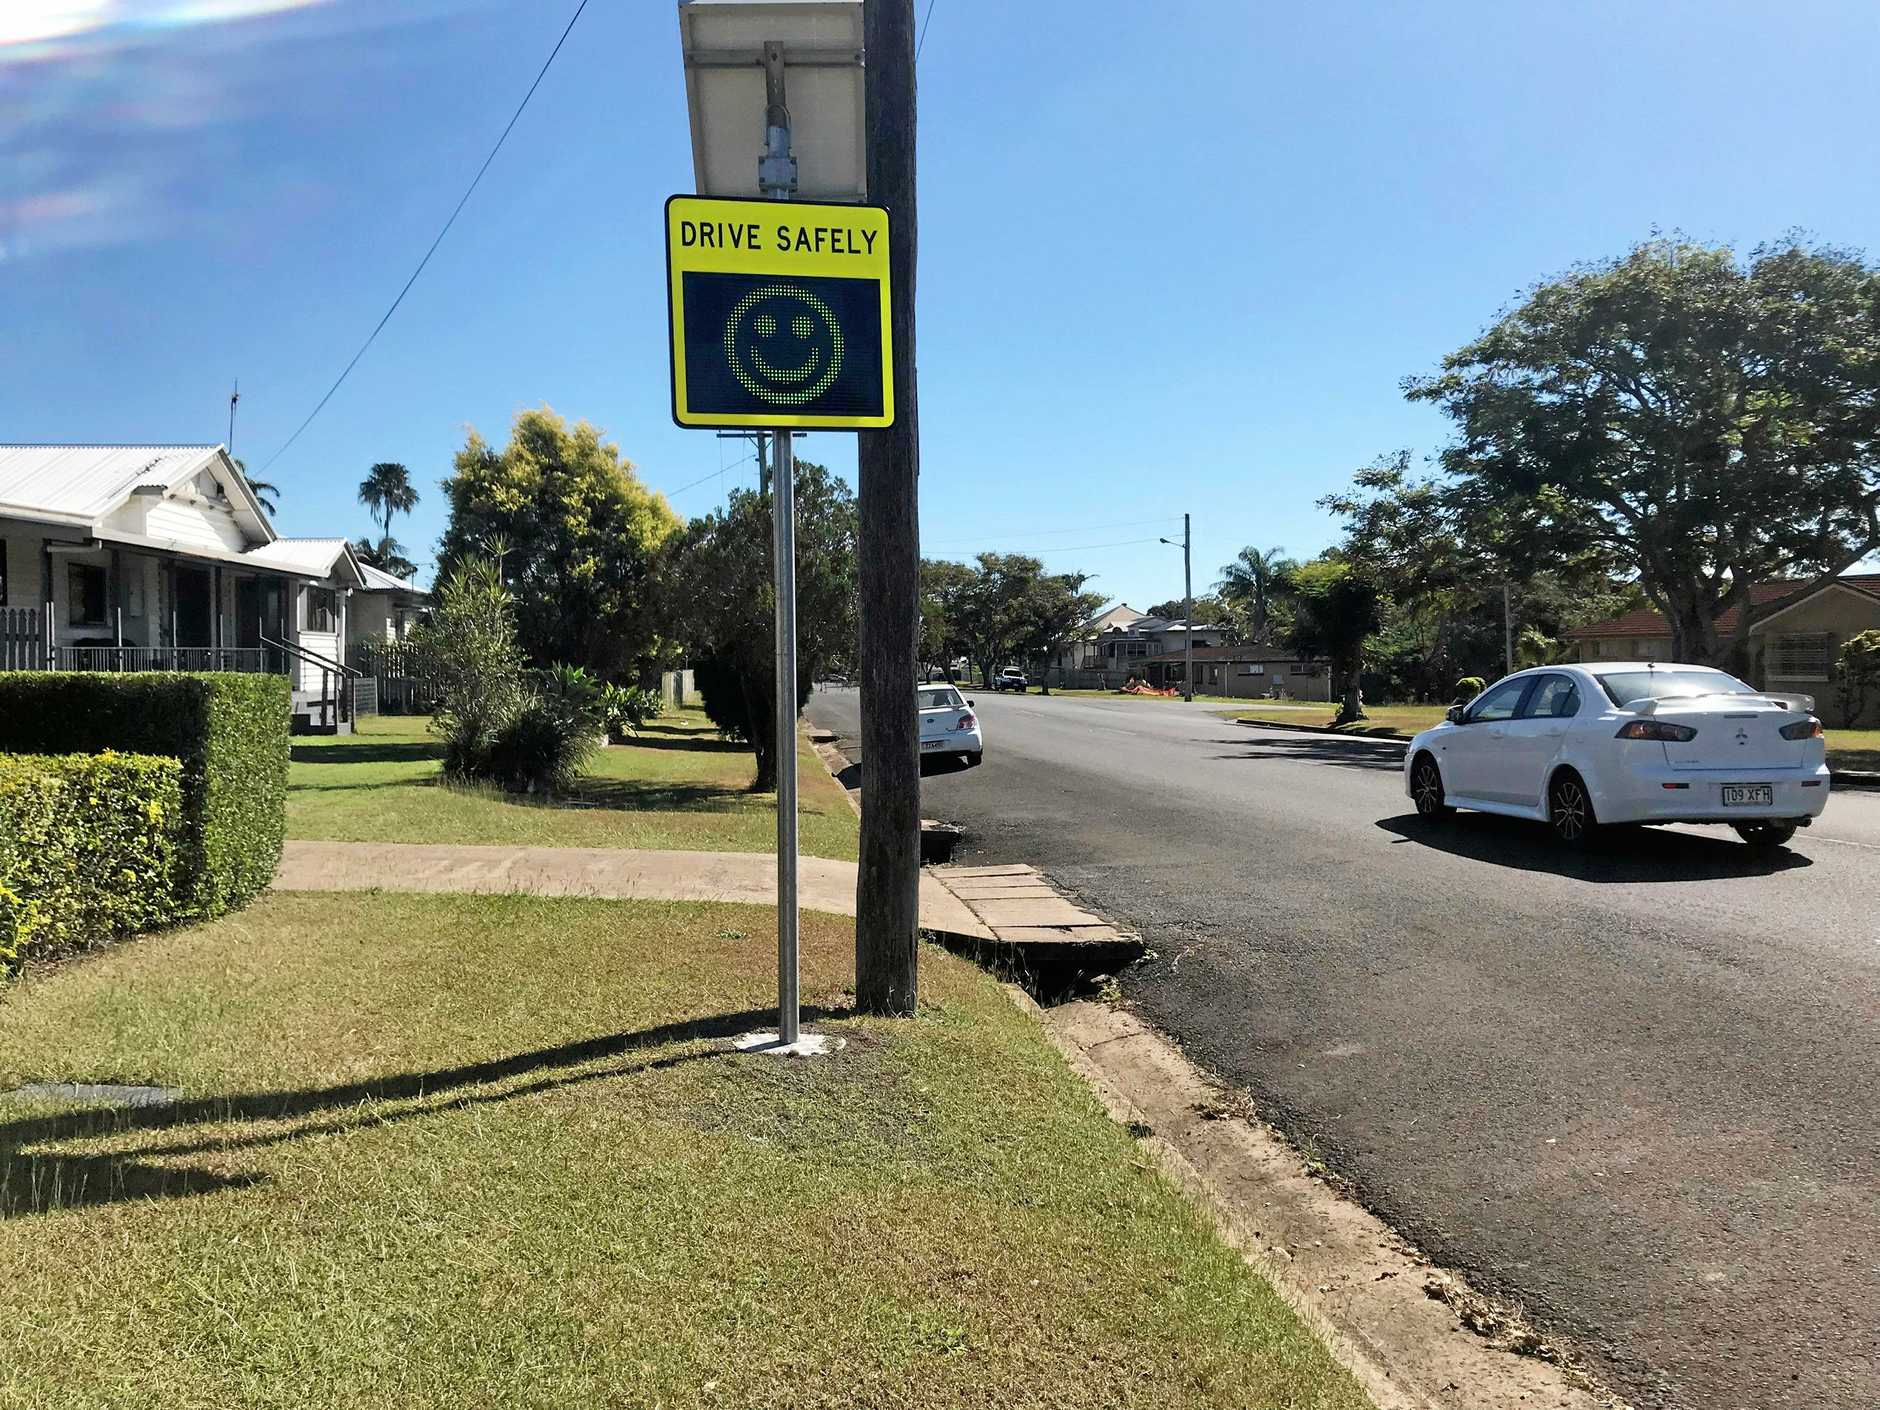 SMILEY FACE: Council will look into implementing smiley face speed signs across the Tweed Shire.